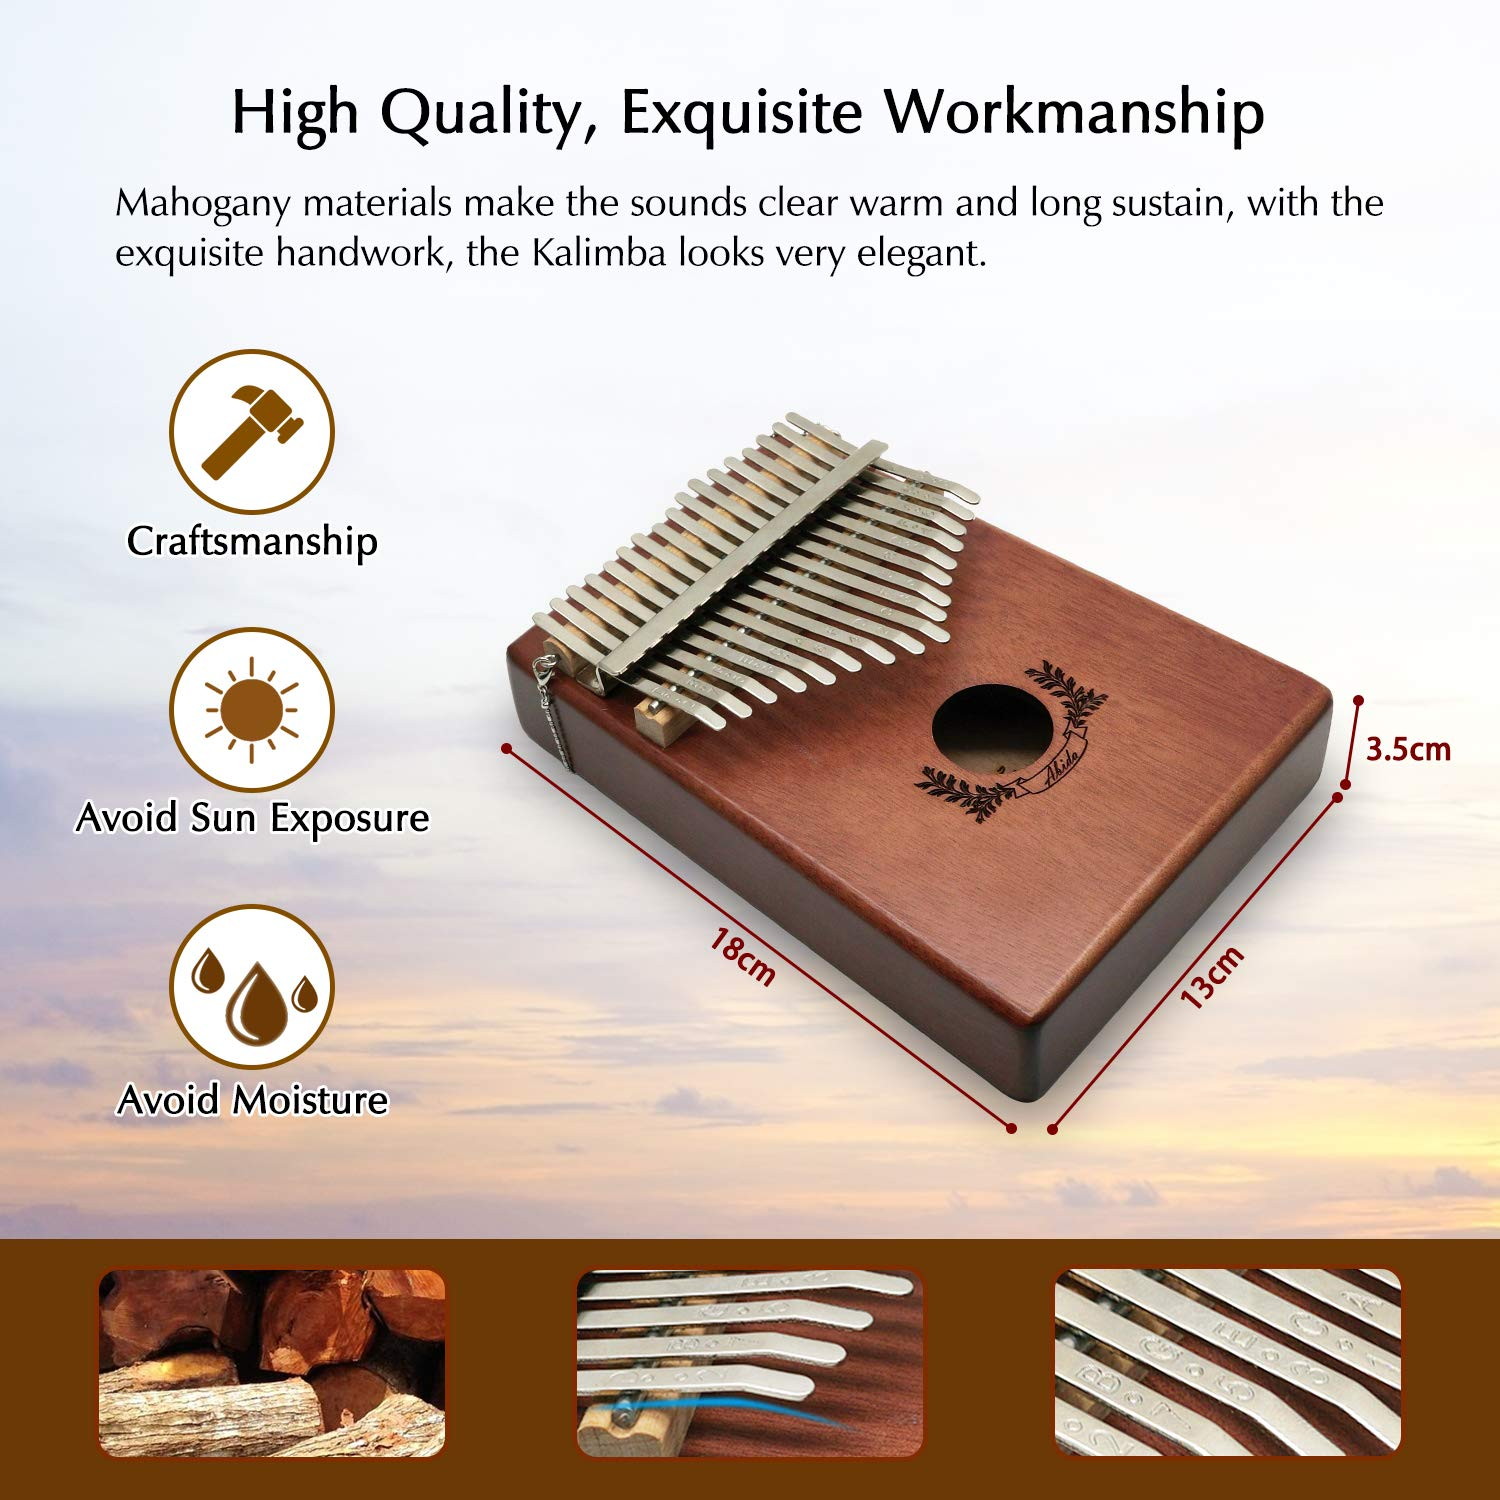 Kalimba, Abida Exquisite 17 Keys Thumb Piano with EVA Waterproof Case Study Instruction Tuning Hammer, Solid Finger Piano Mahogany Body Portable Musical Instrument Gifts for Kids and Adult Beginners by Abida (Image #4)